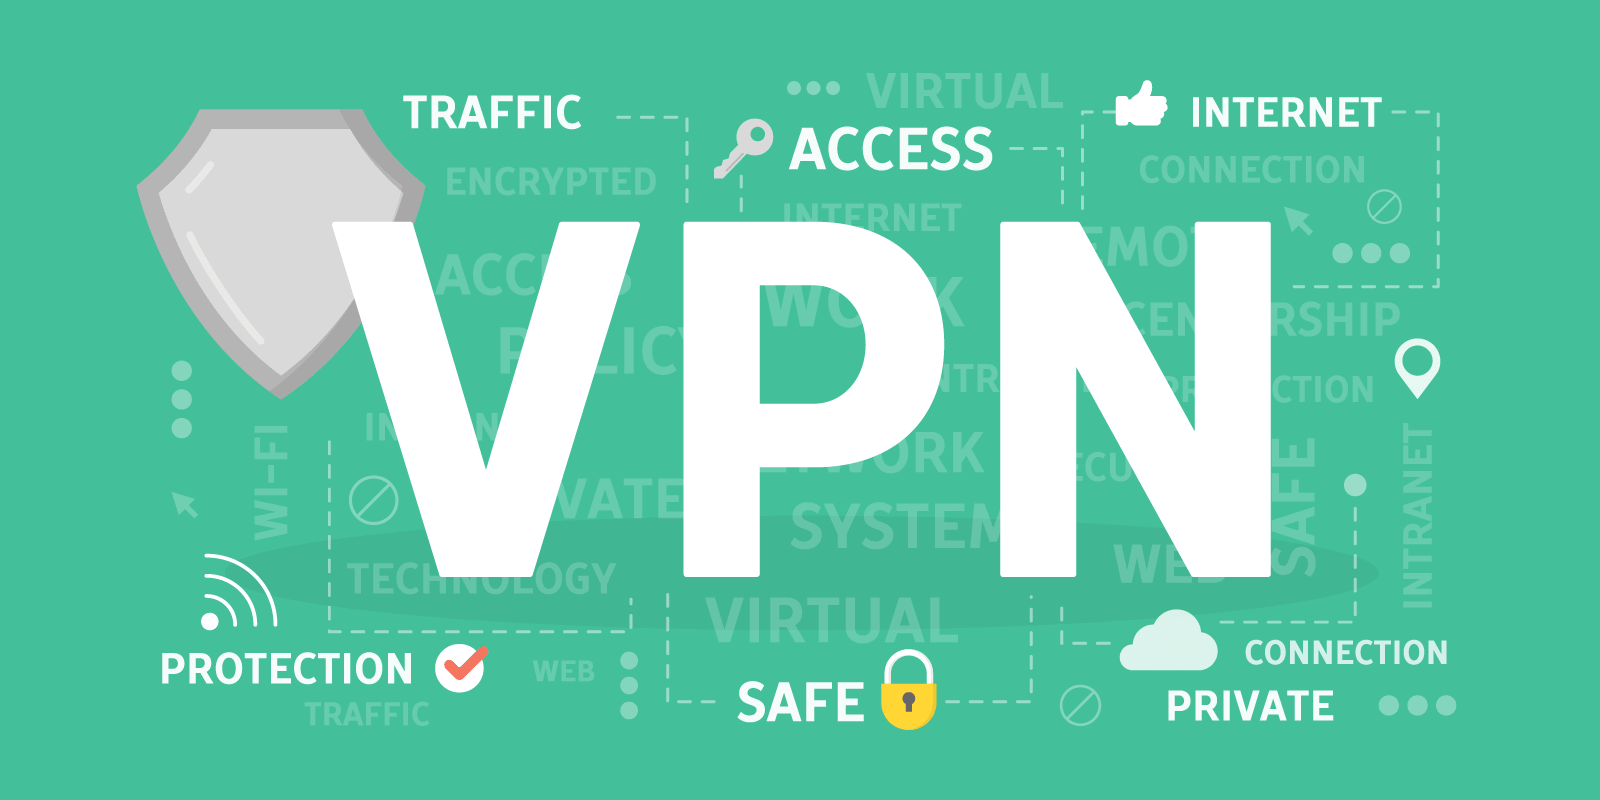 Top 3 Best VPNs that are Free and Safe - No. 2 is Unbelievable